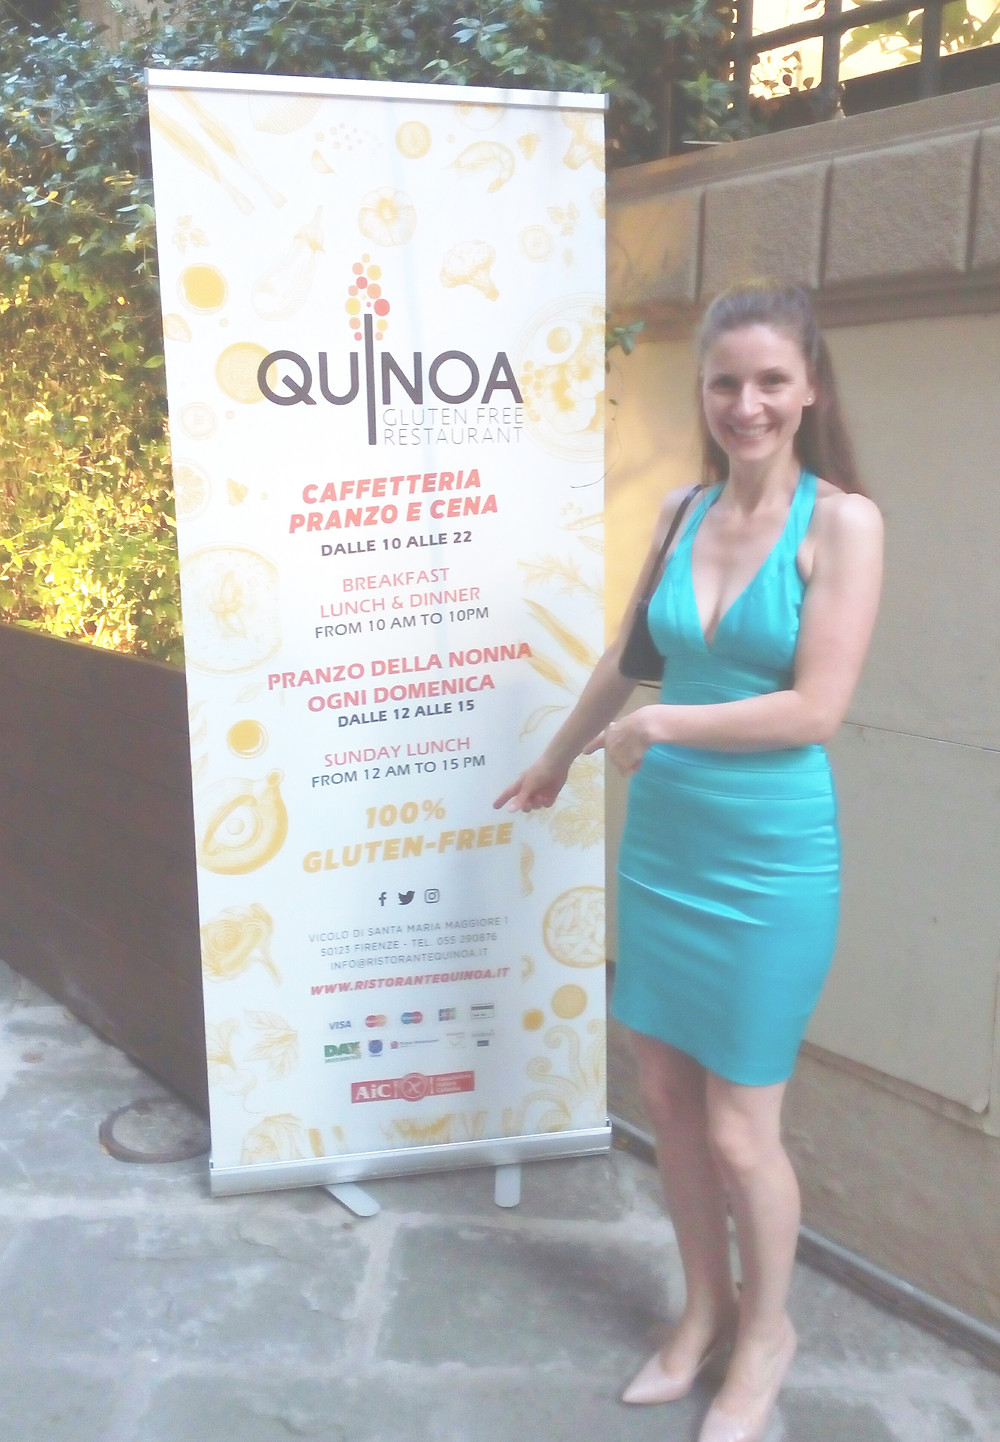 The 100% gluten-free restaurant Quinoa in the centre of Florence